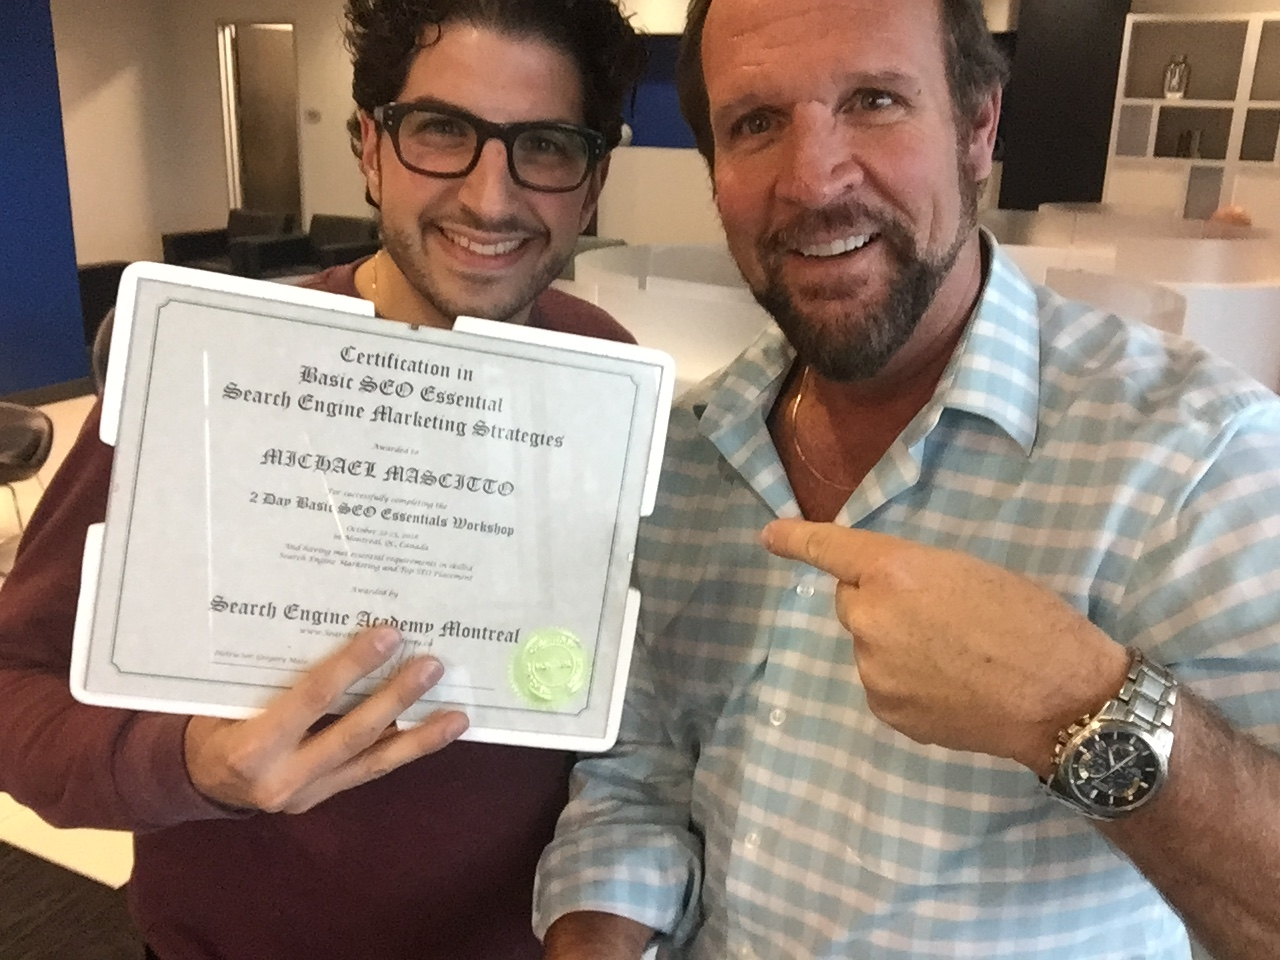 Michael and Greg with SEO Certification